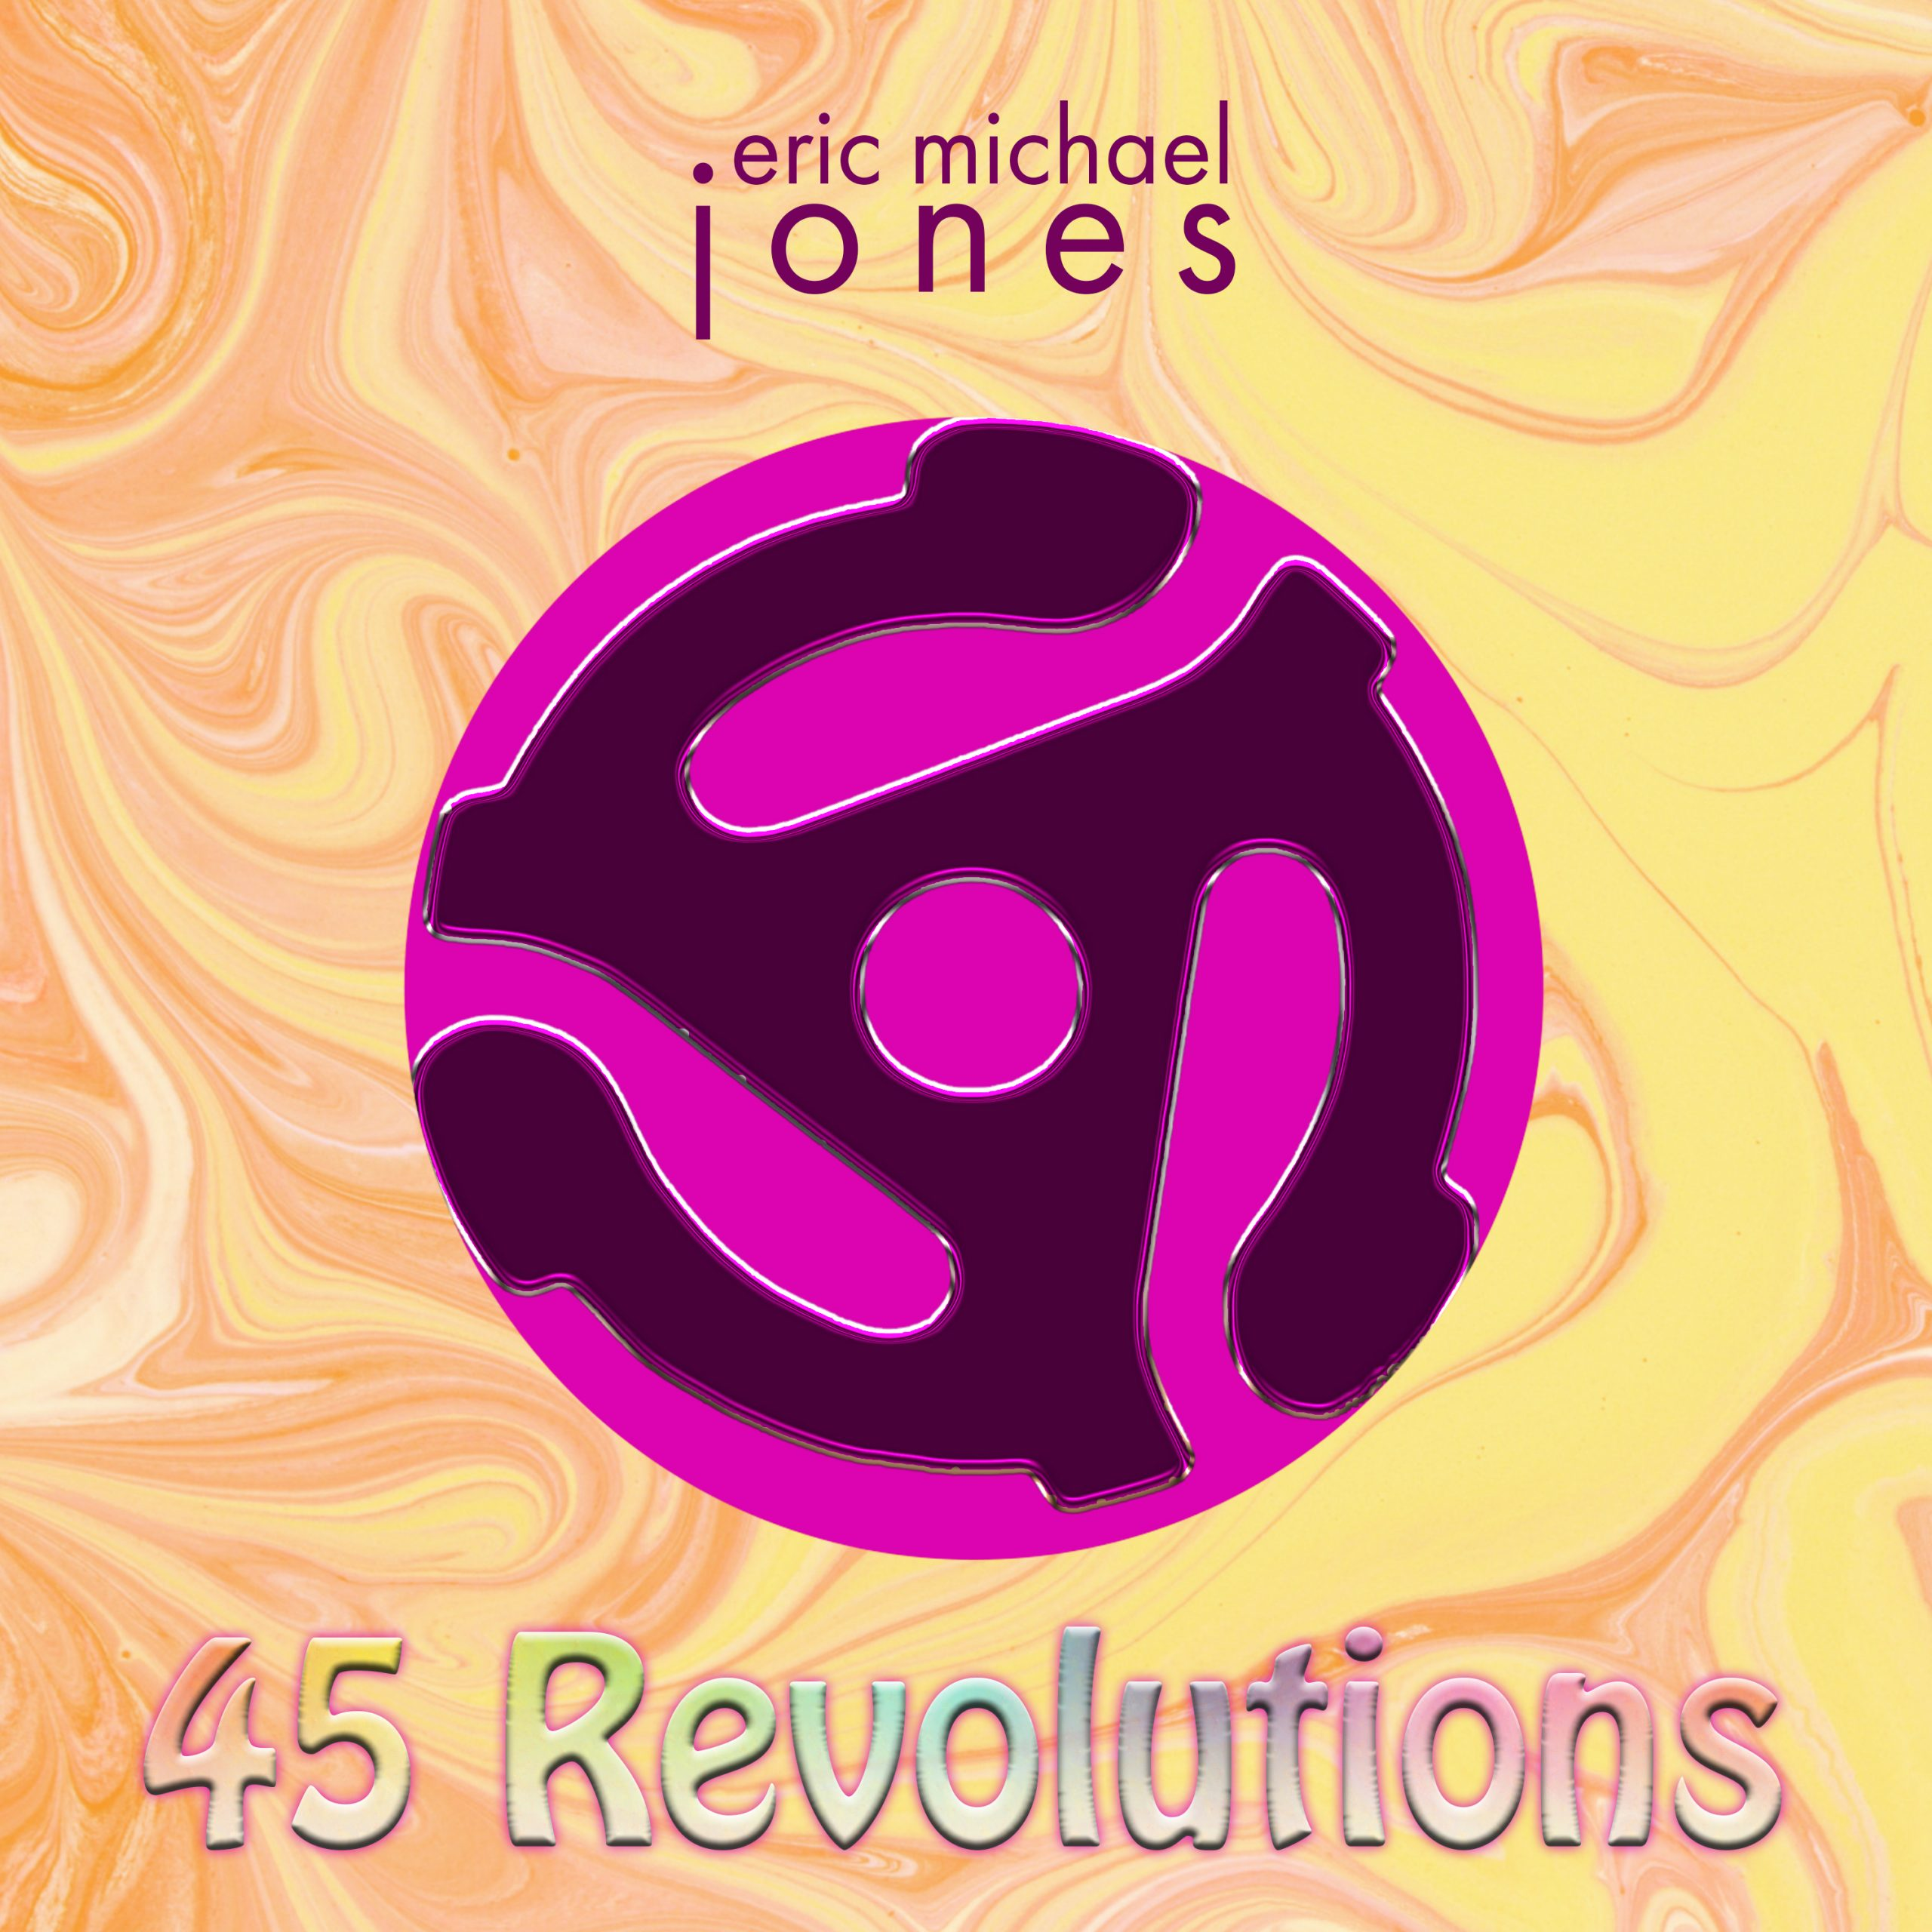 Cover art for 45 Revolutions, showing a graphic of a 45 rpm spindle adaptor